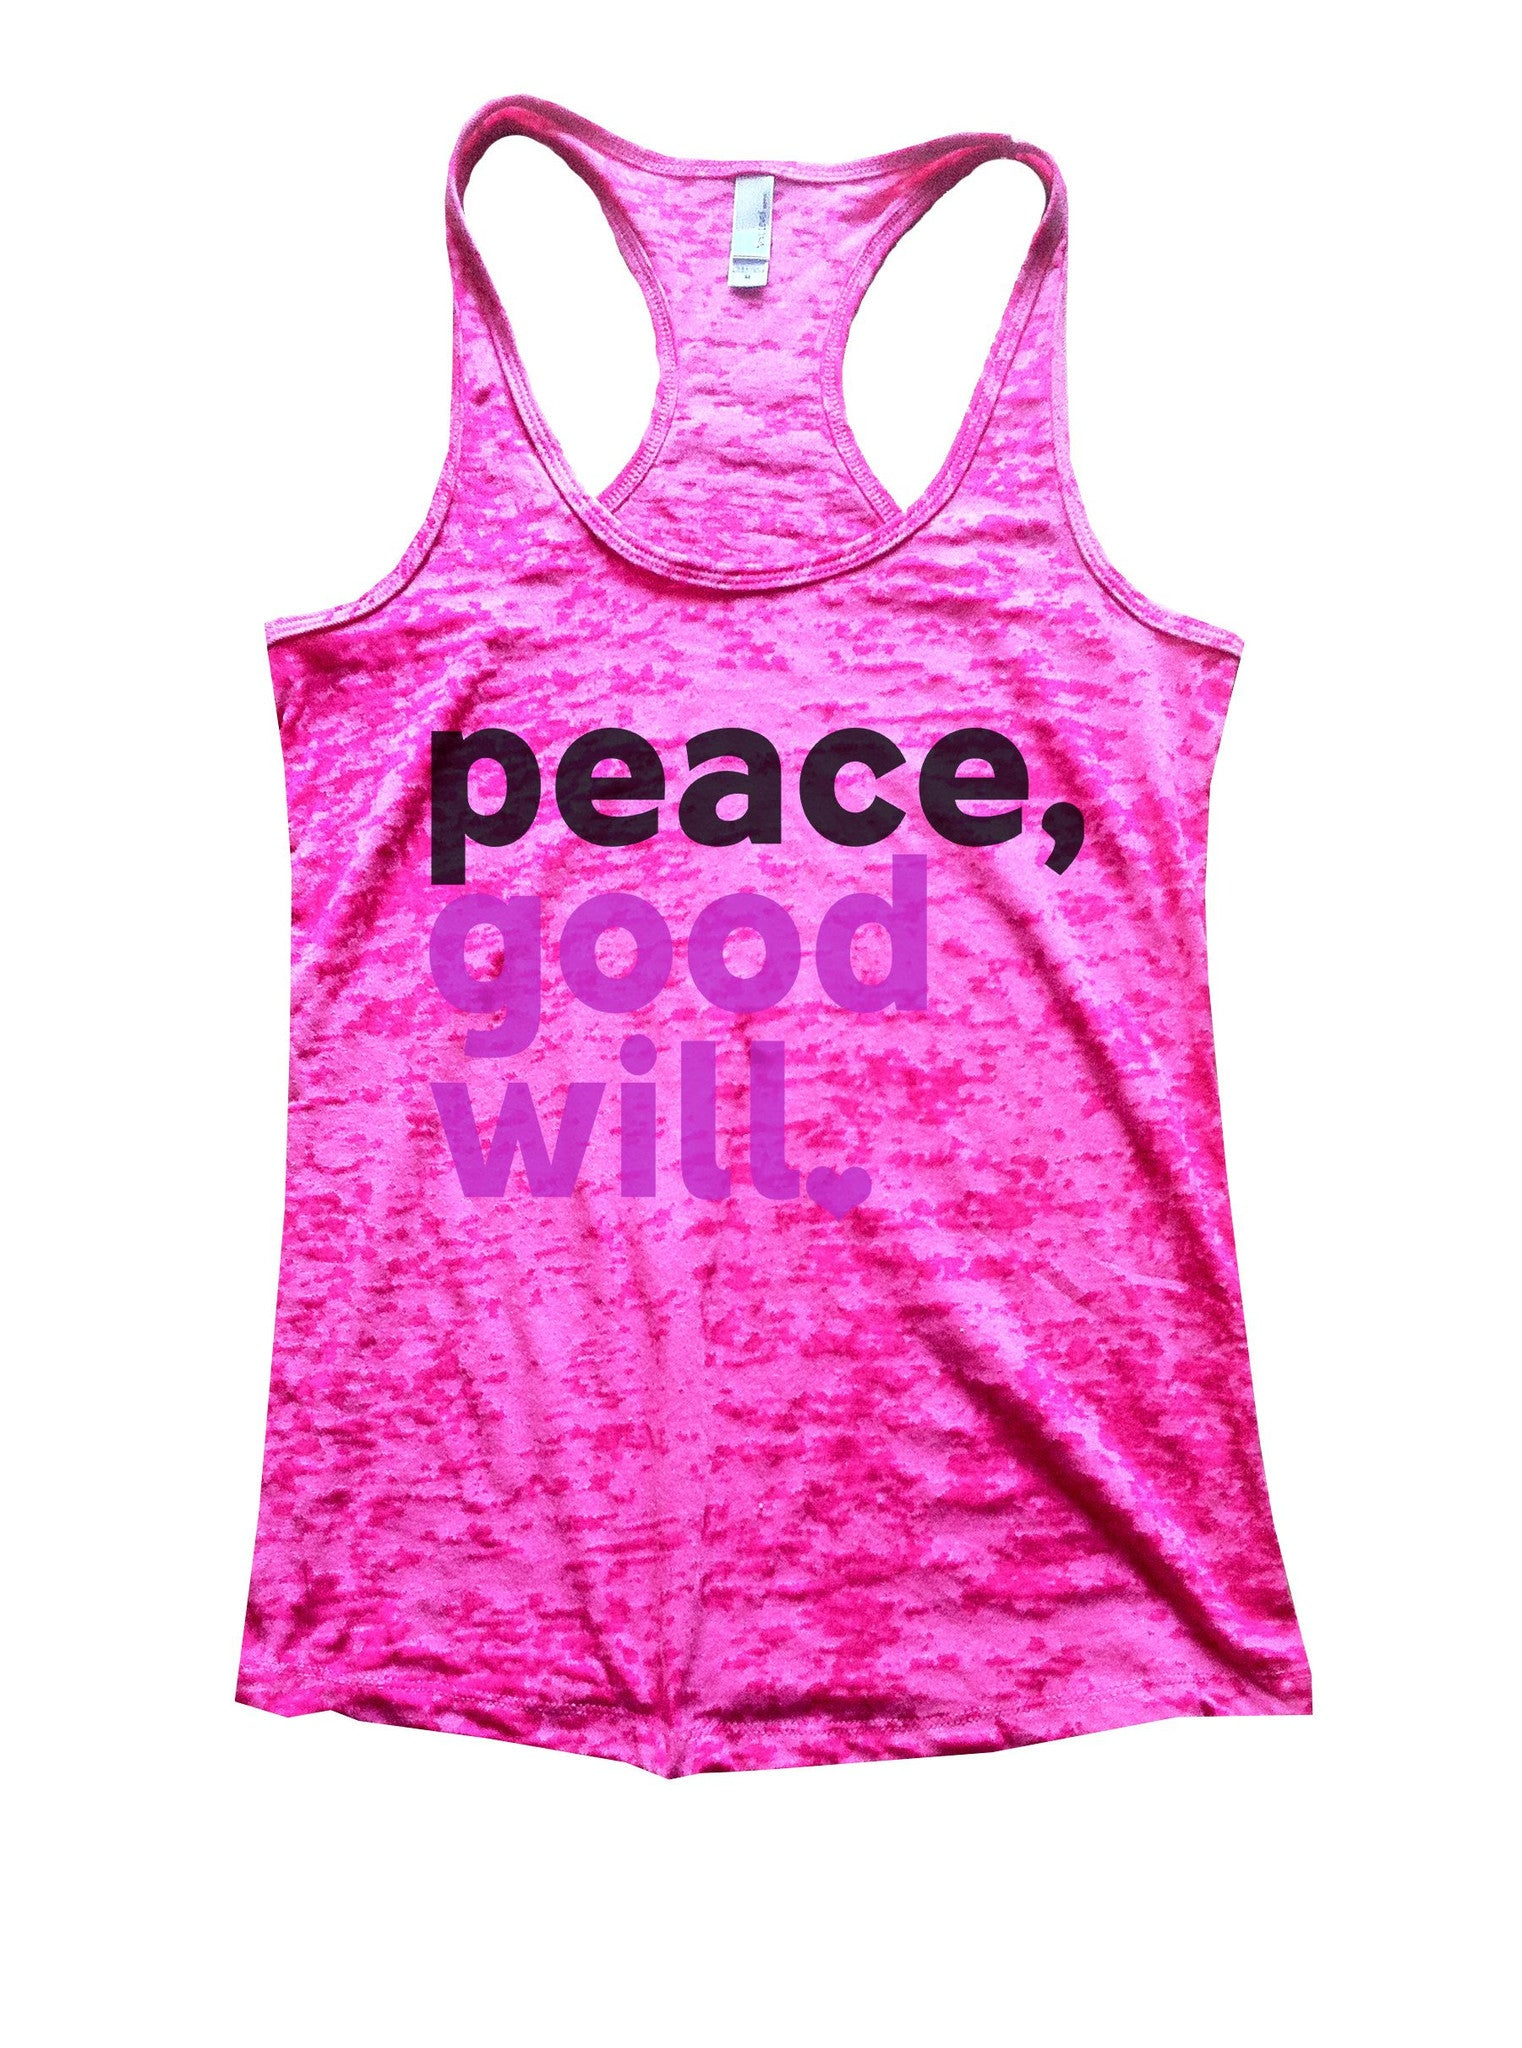 Peace, Good Will Burnout Tank Top By BurnoutTankTops.com - 1078 - Funny Shirts Tank Tops Burnouts and Triblends  - 5